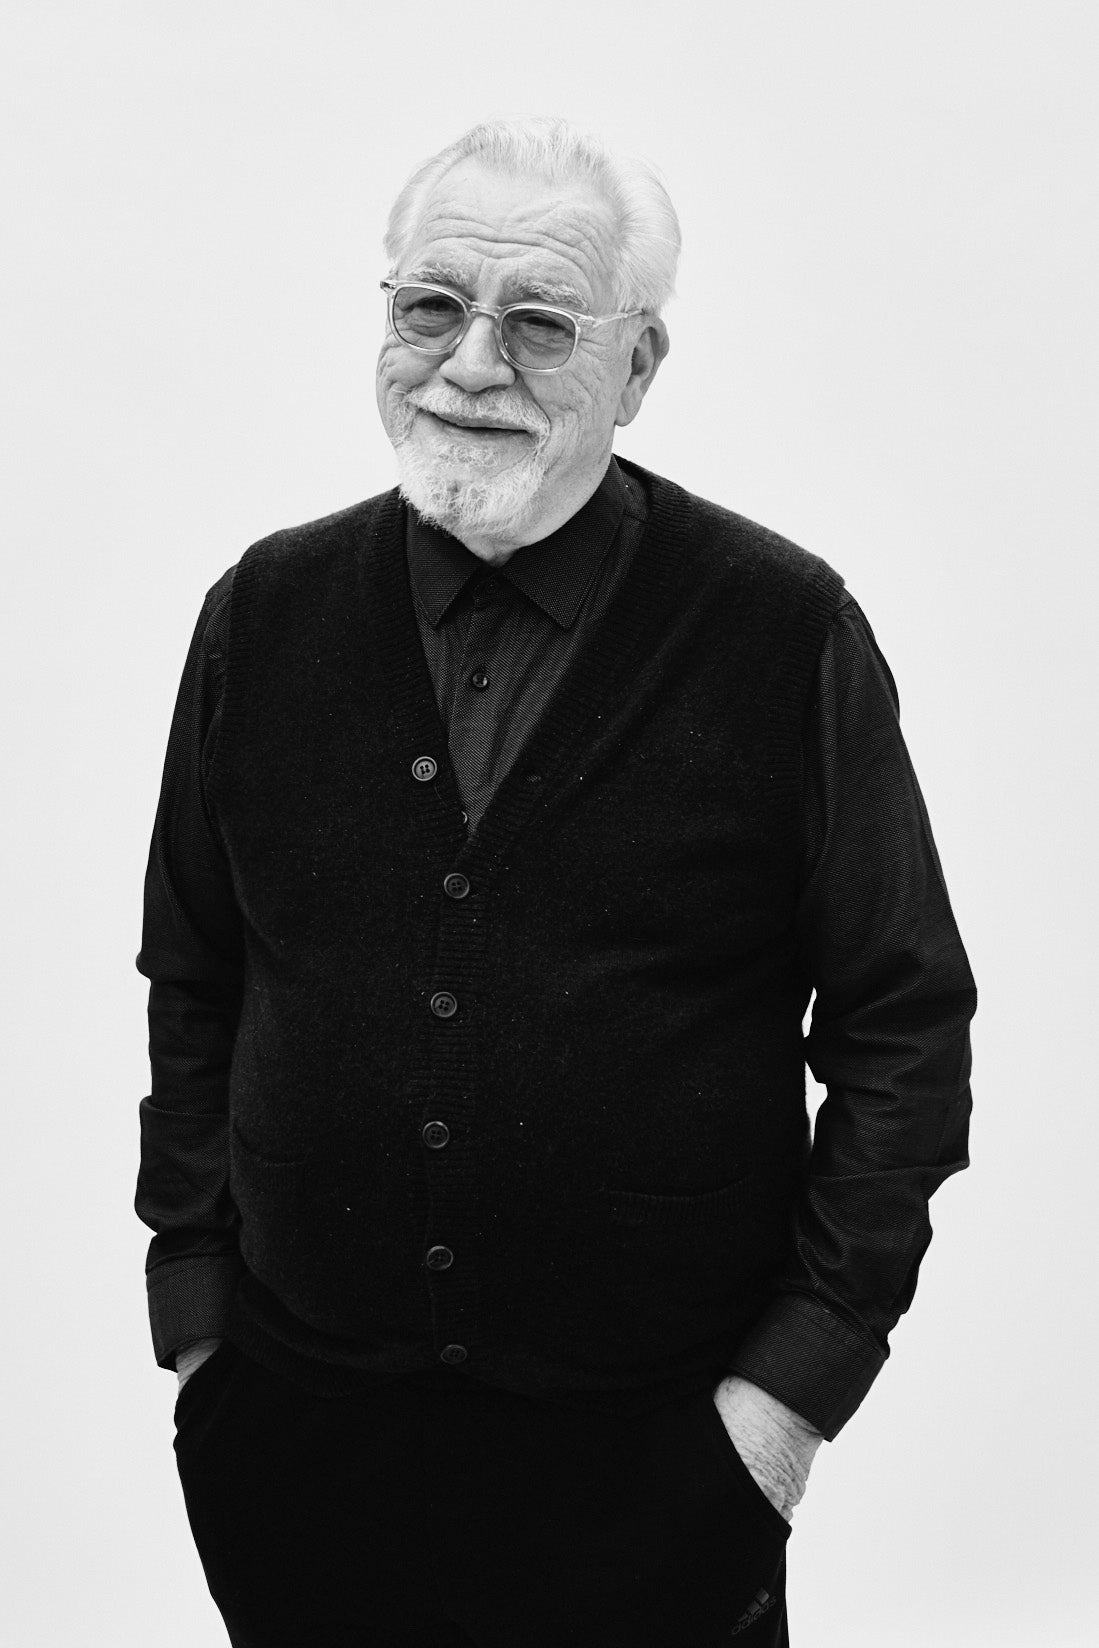 Succession's Brian Cox wears Mr. Leight Coopers sunglasses from Garrett Leight California Optical.